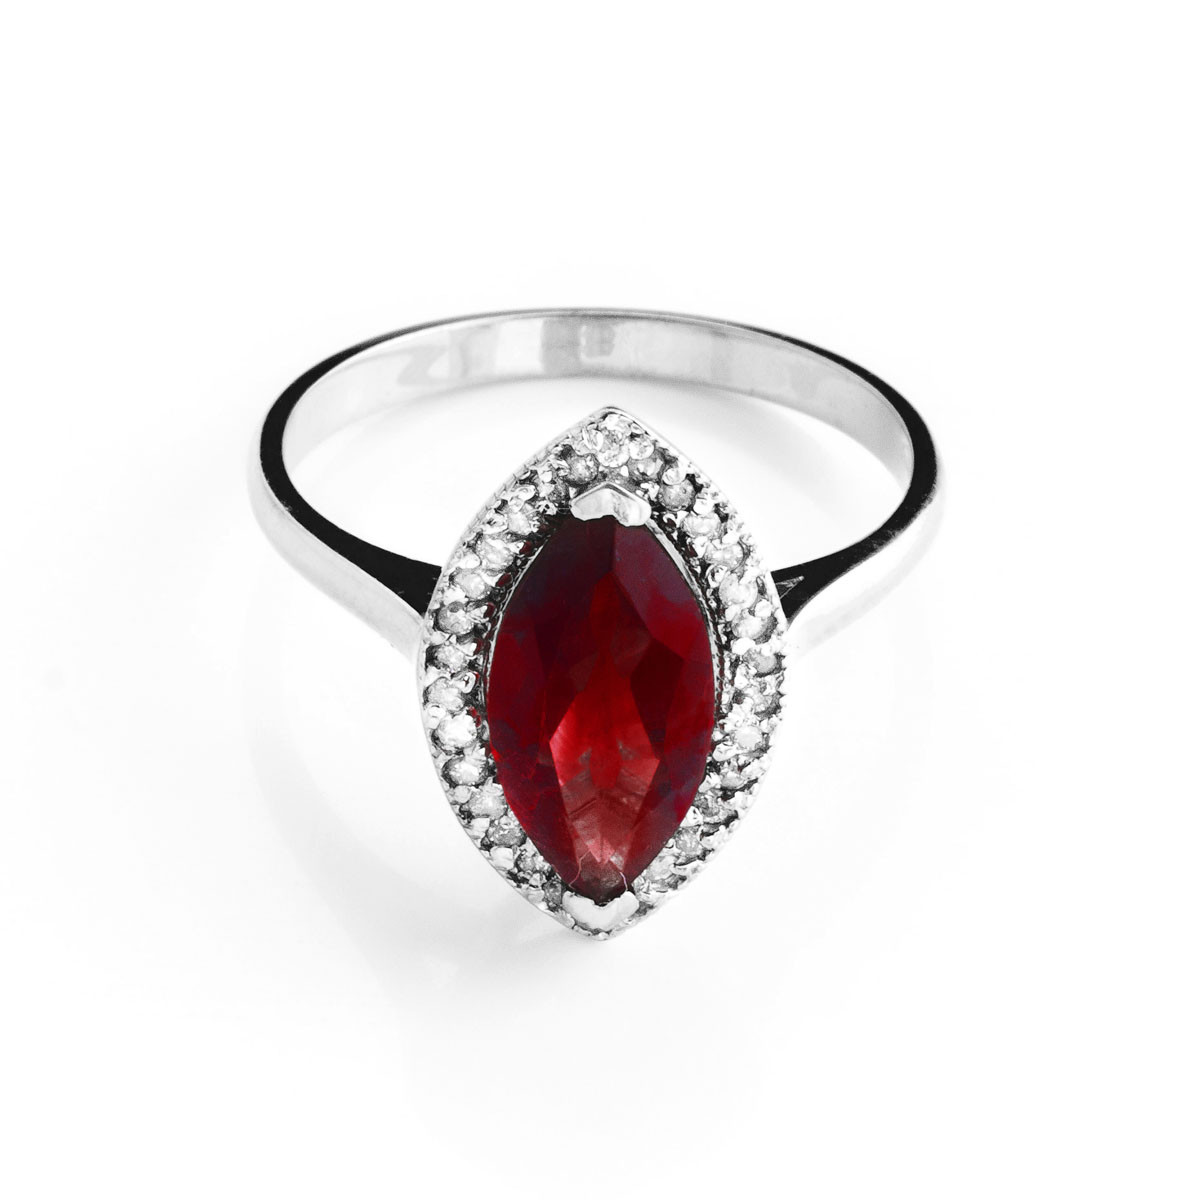 Garnet Halo Ring 2.15 ctw in 18ct White Gold